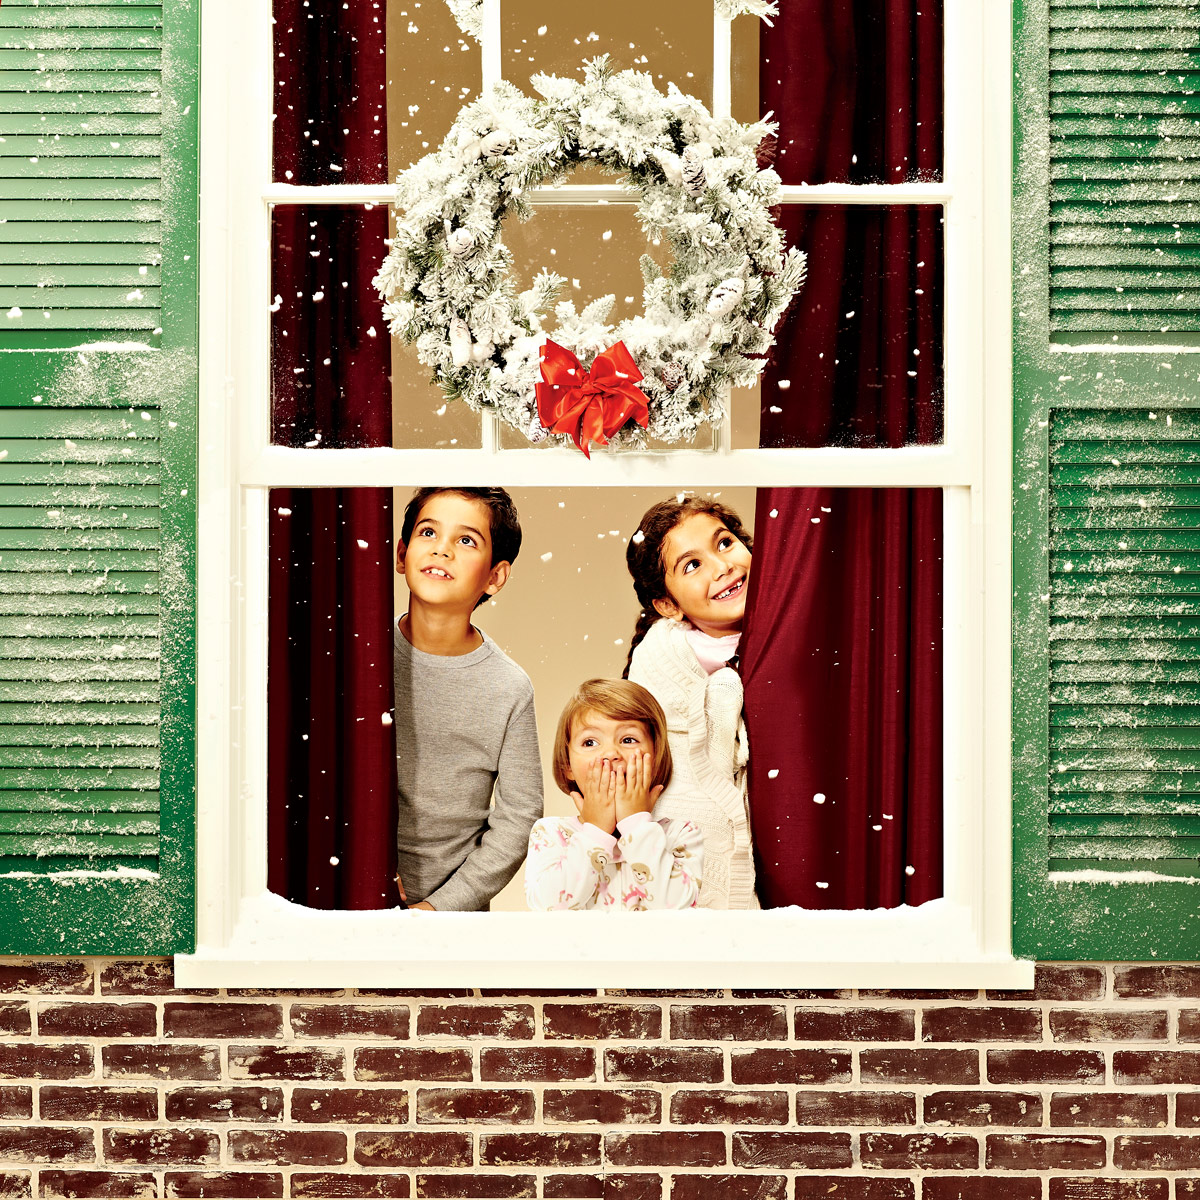 jcp-cover-window-snow